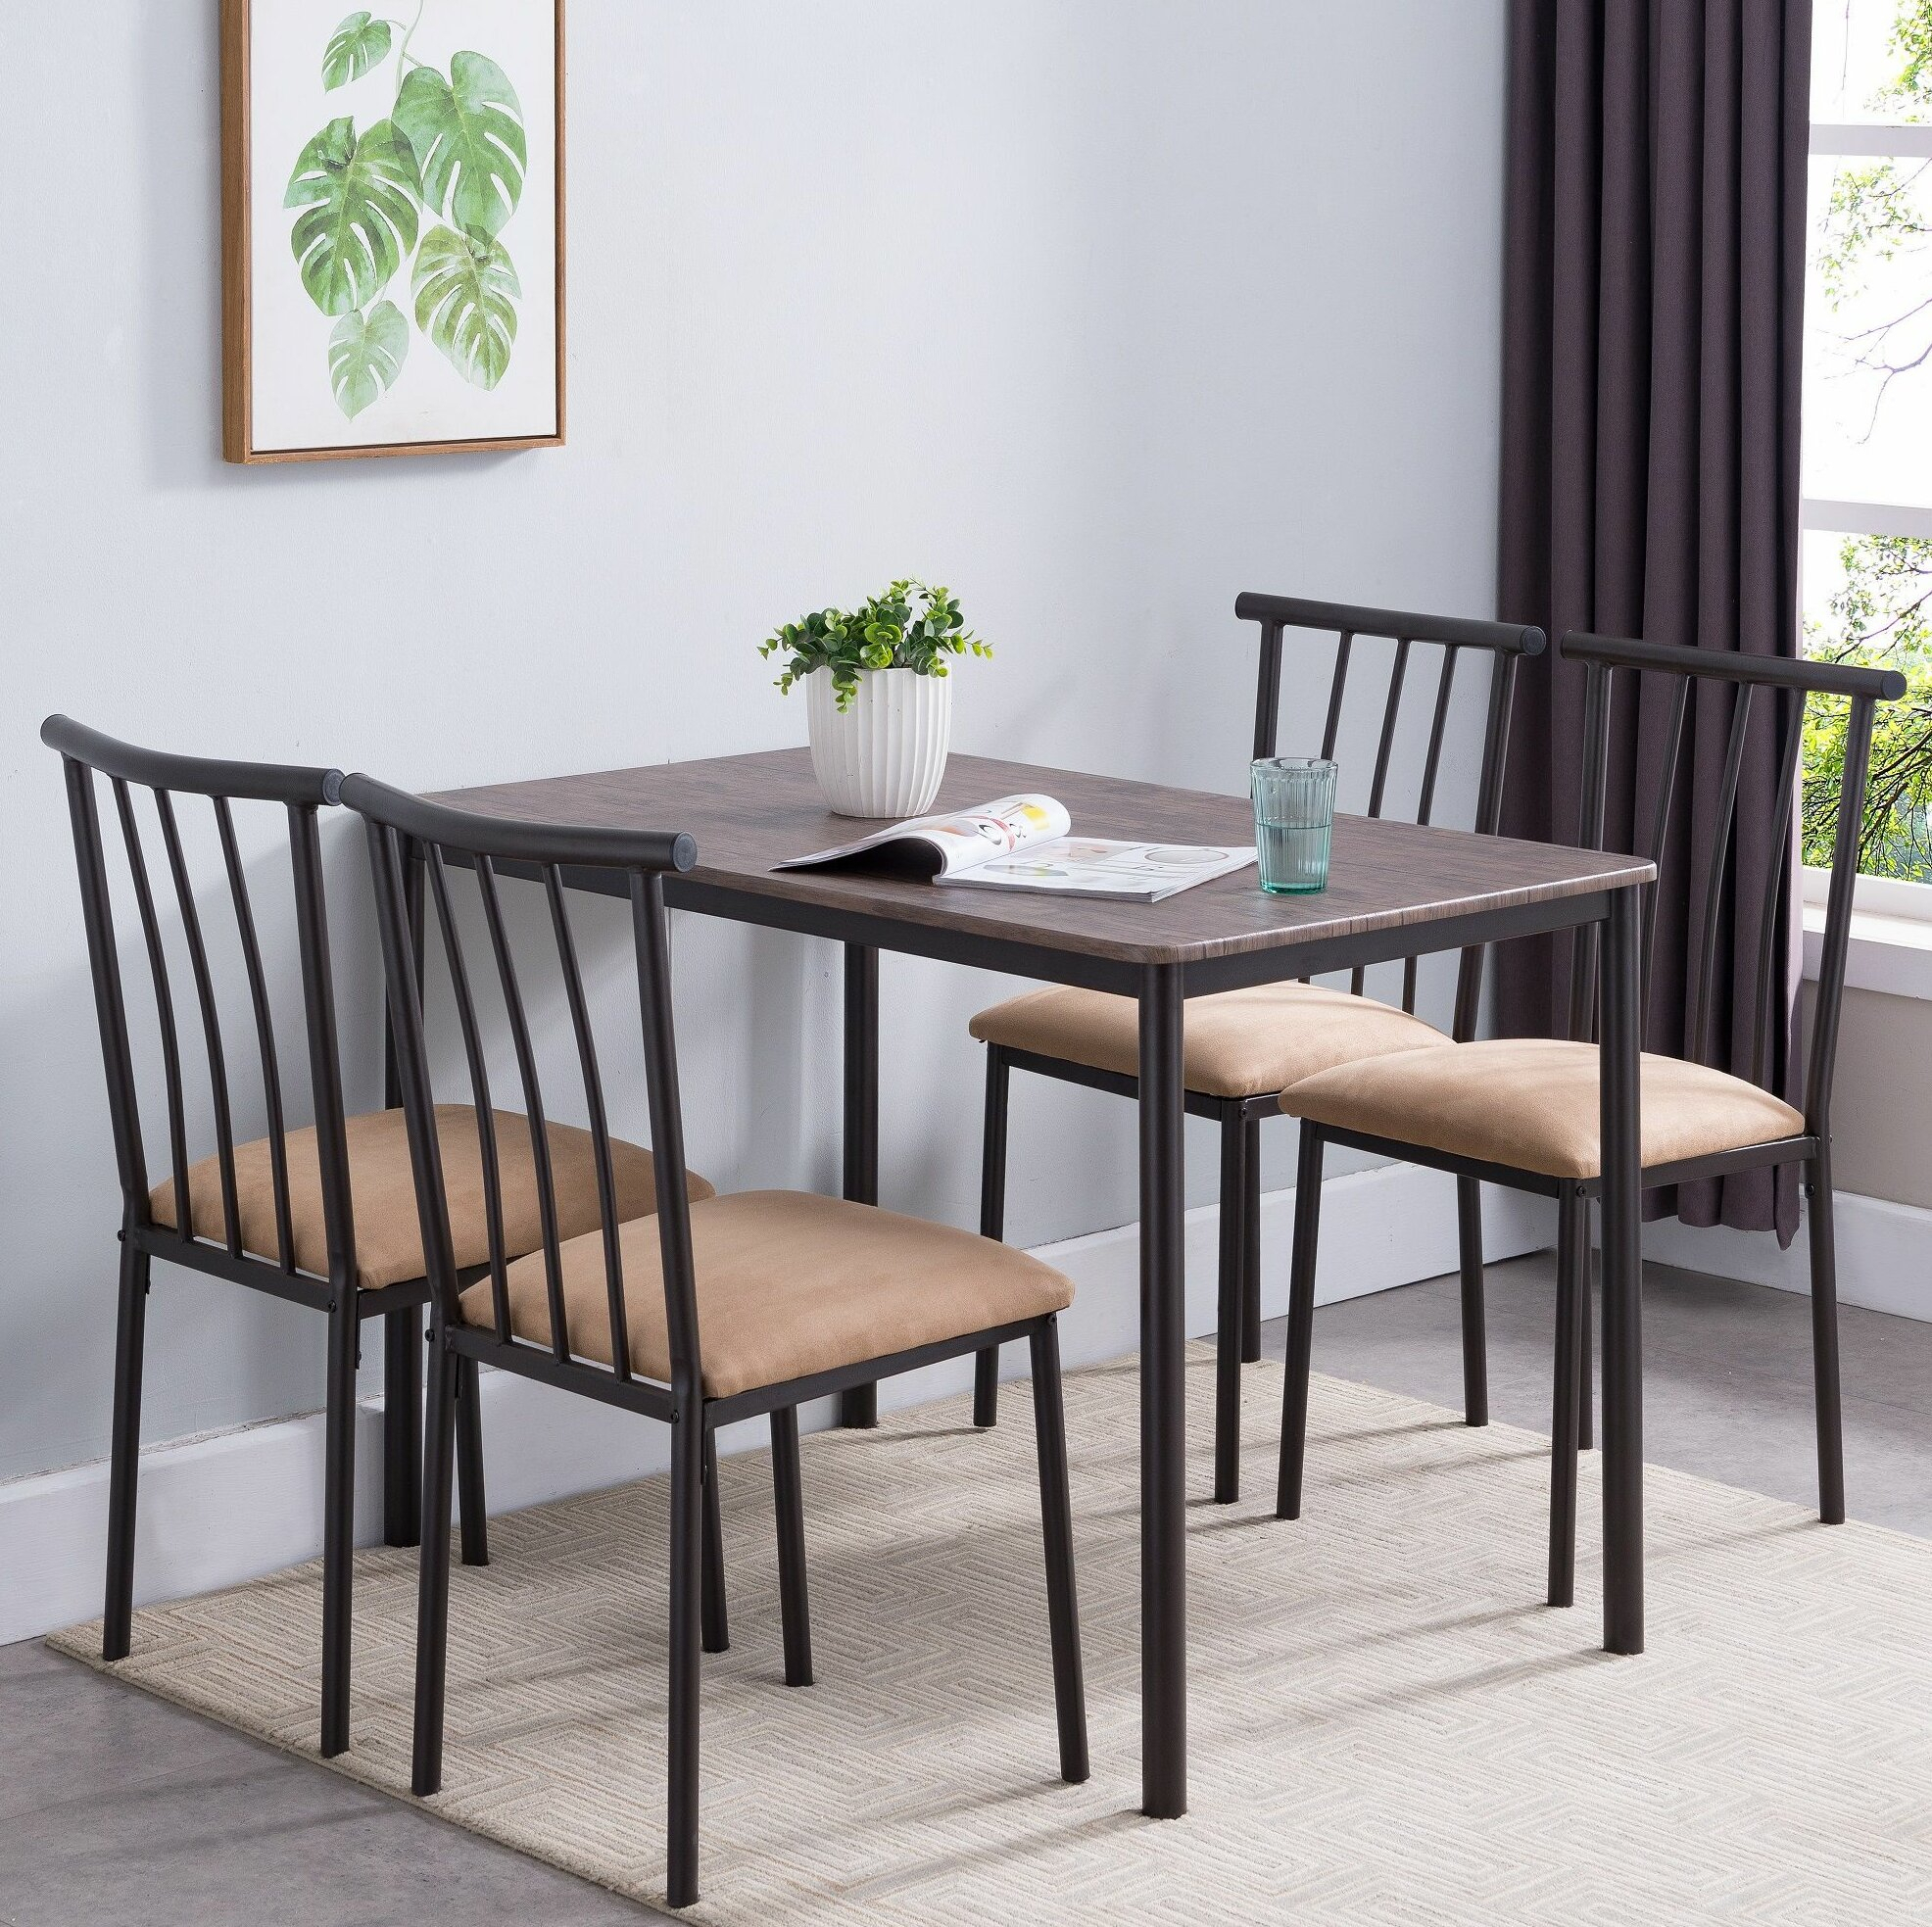 Stclair 5 Piece Dining Set Throughout Most Popular Pattonsburg 5 Piece Dining Sets (View 11 of 20)